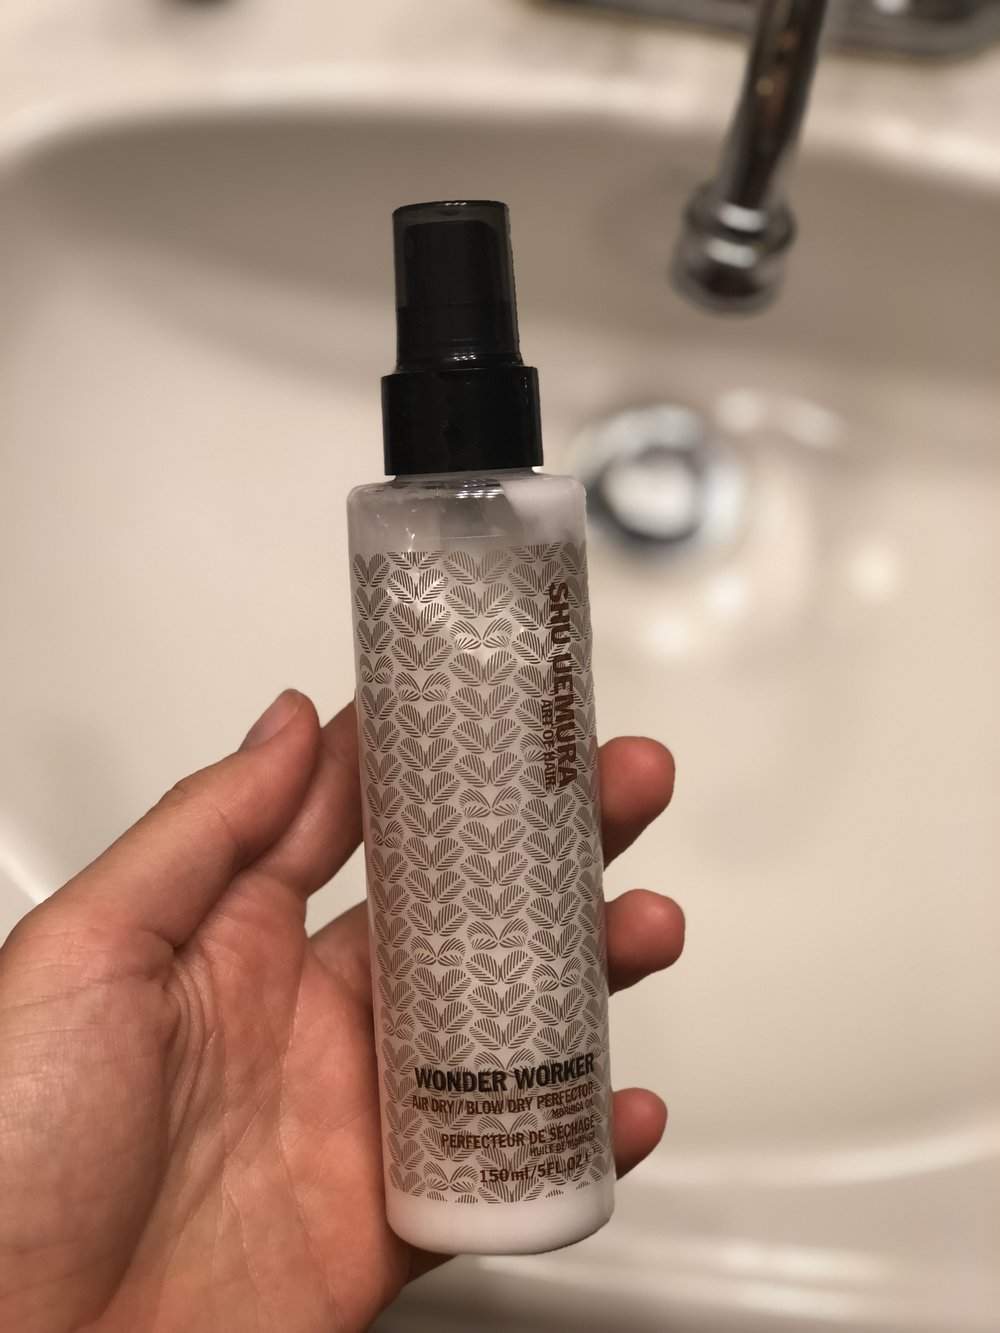 this wonder worker bottle should be wearing a cape. serious business requires a cape. this is the perfect light weight product post-bath or shower!